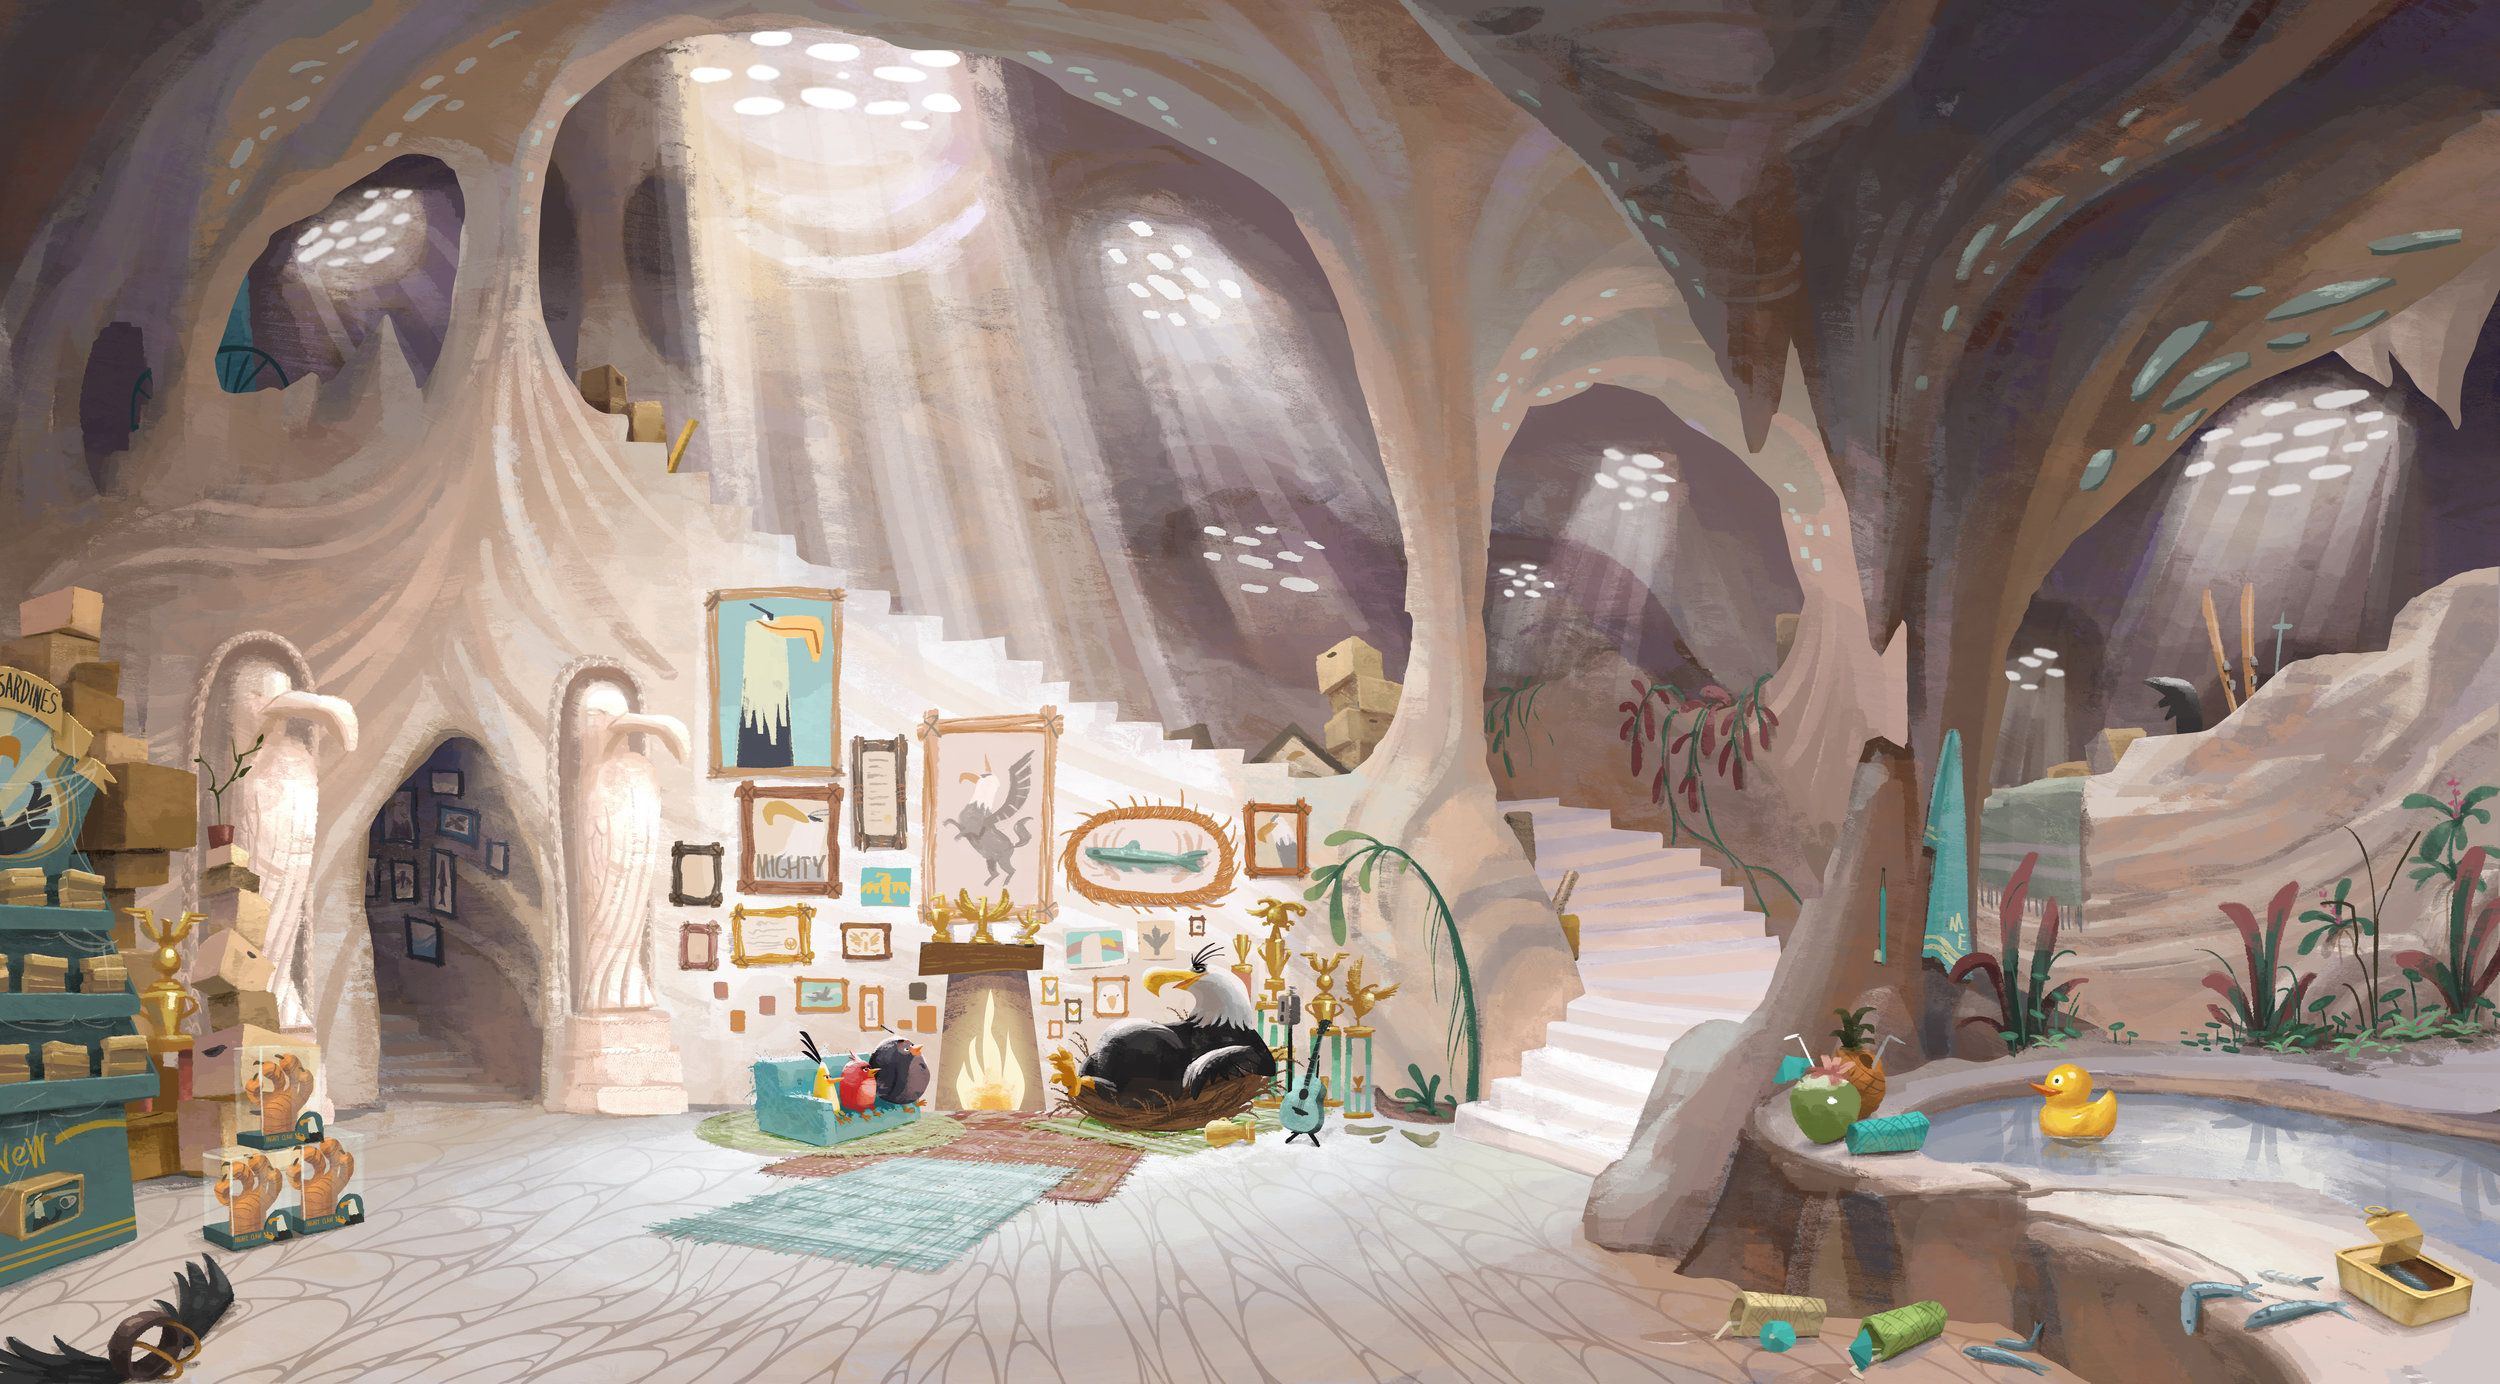 The Angry Birds Movie Concept Art - Eagle Cave Interior ...